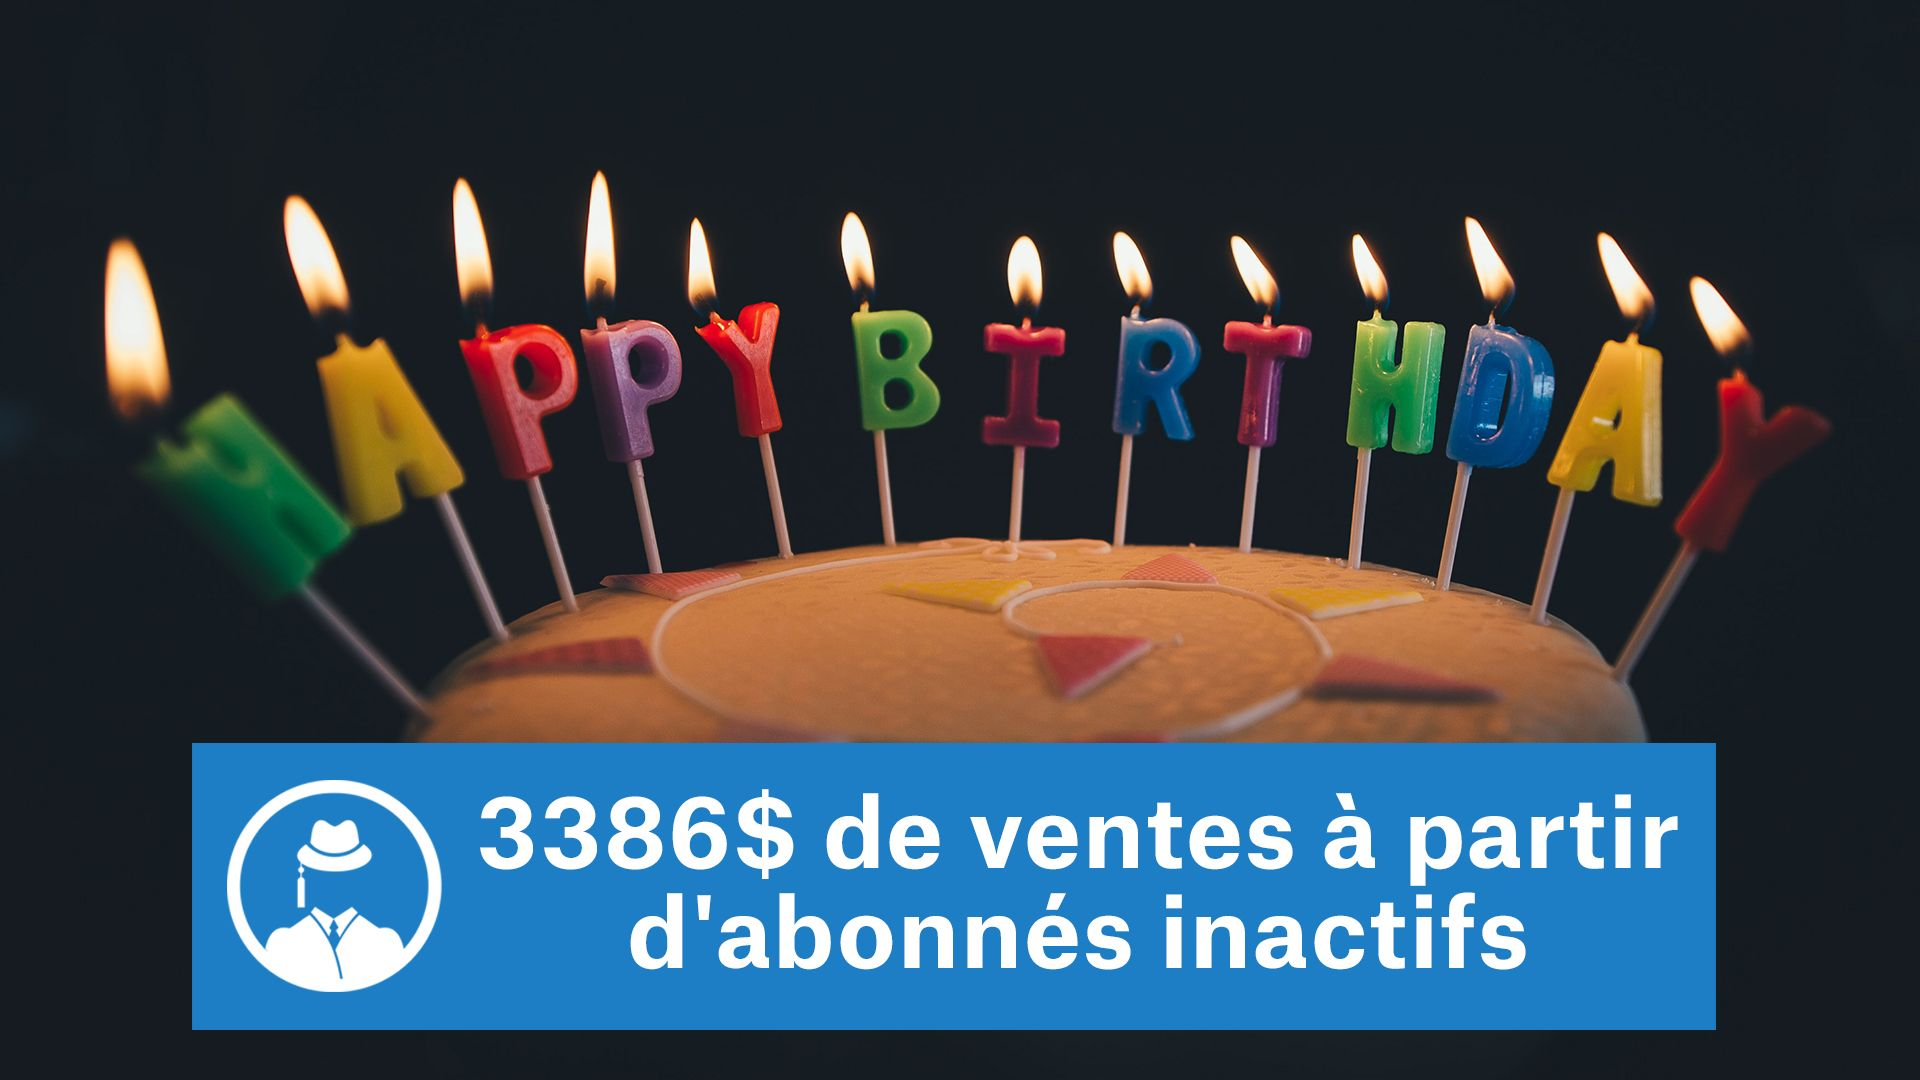 3386$ de ventes à partir d'abonnés inactifs #GrowthHacking #WebMarketing #FormationGrowthHacking #CentreDeFormationFrance #TunnelAARRR #AARRR #SocialMedia #CommunityManagement #SEO #MarketingDigital #SiteWeb